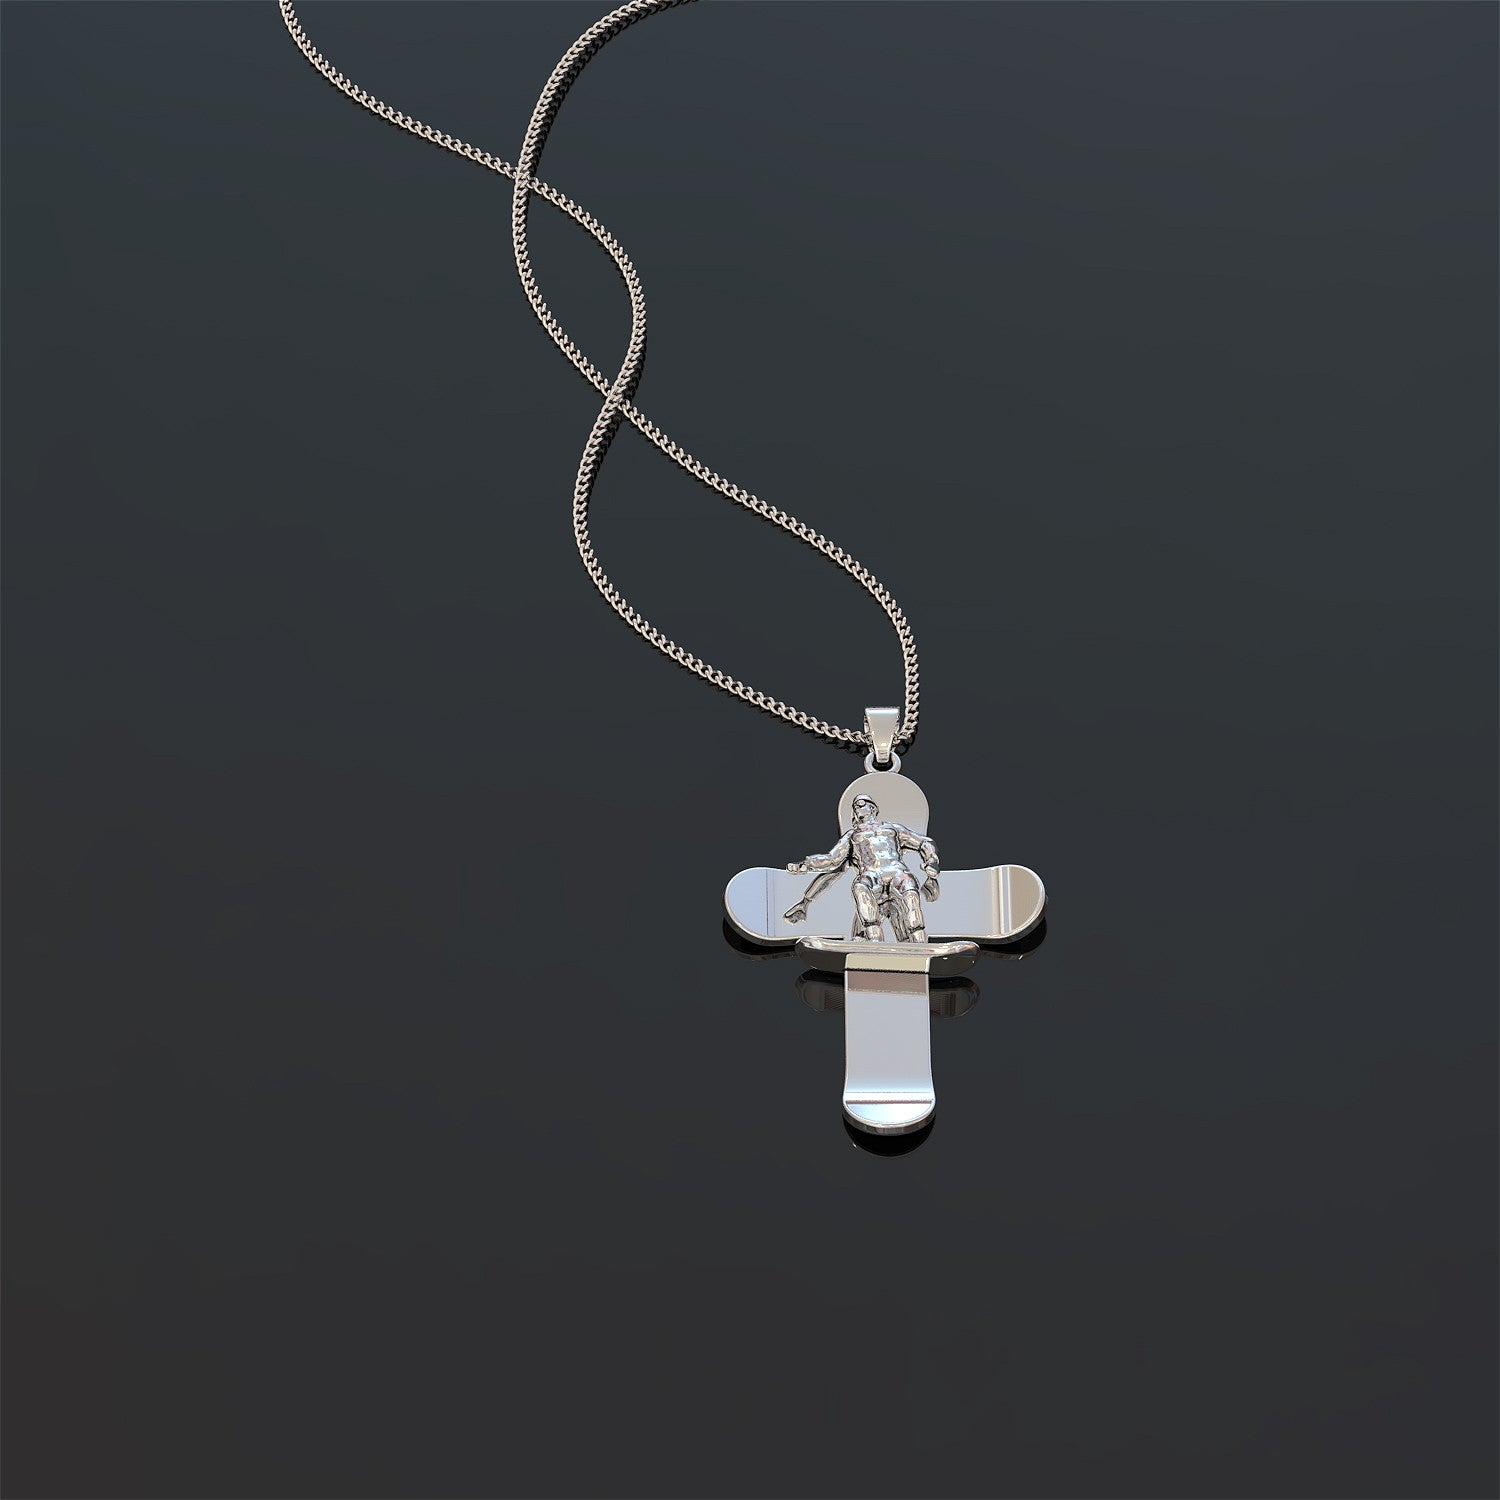 Snowboard Cross Necklace - LIMITED EDITION